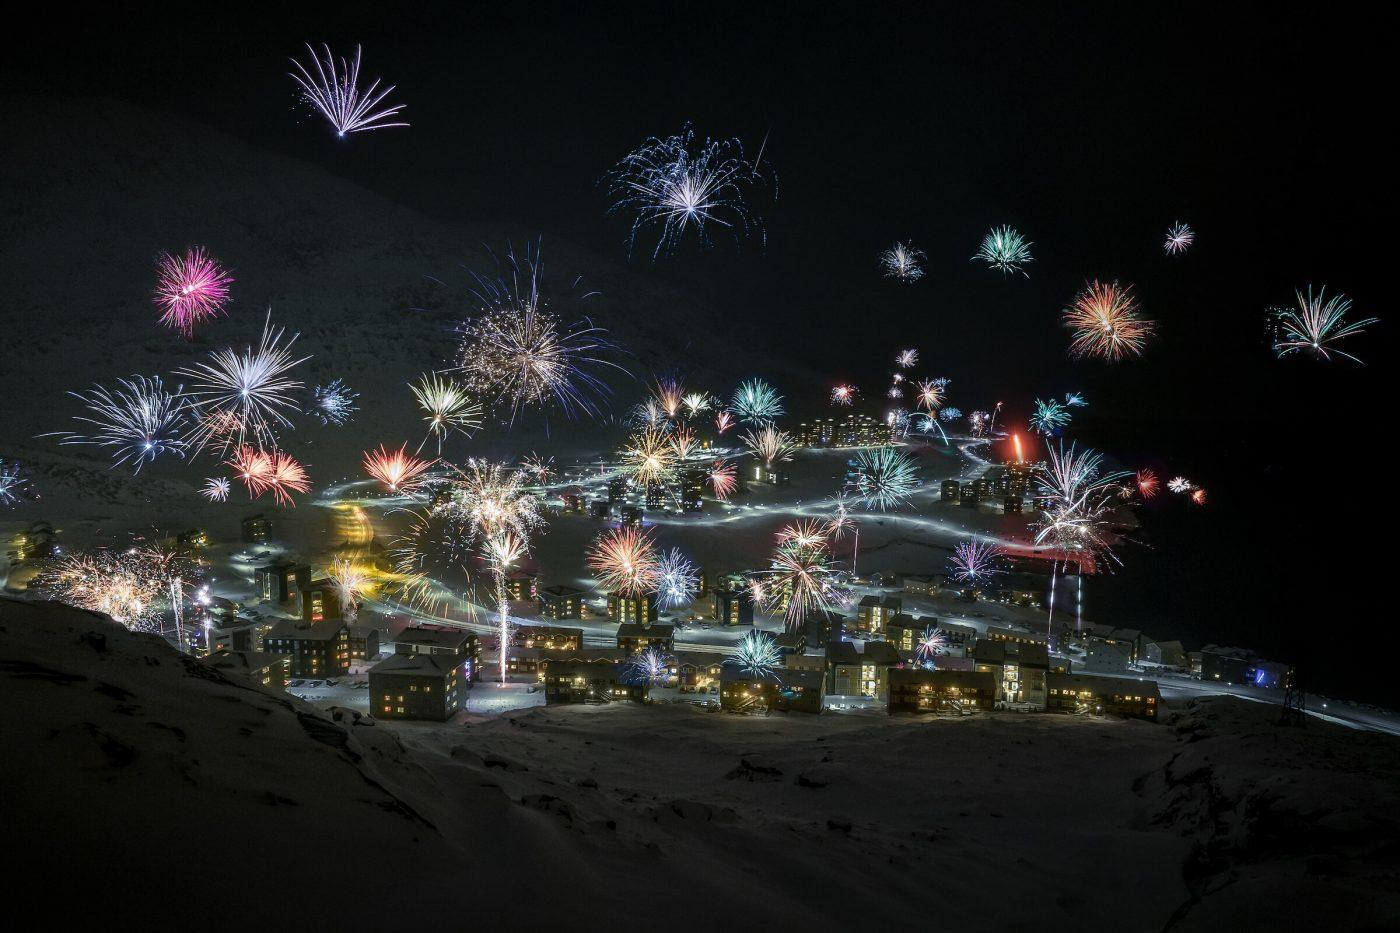 New Year's Eve lights up over the Nuuk suburb Qinngorput in Greenland, by Mads Pihl